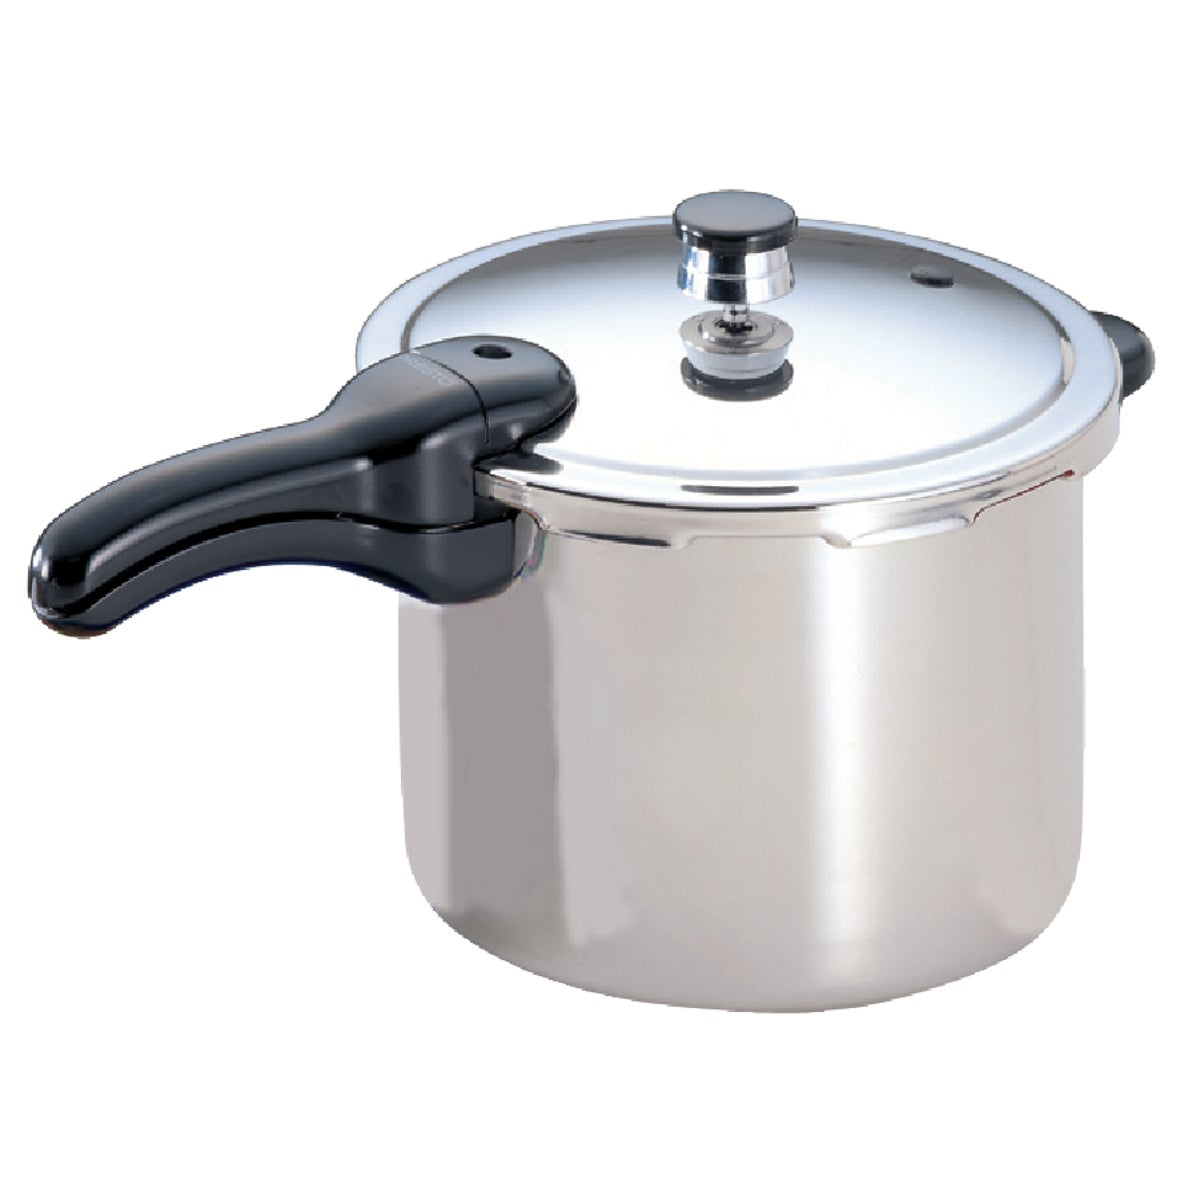 6QT SS PRESSURE COOKER - 01362 by National Presto Ind